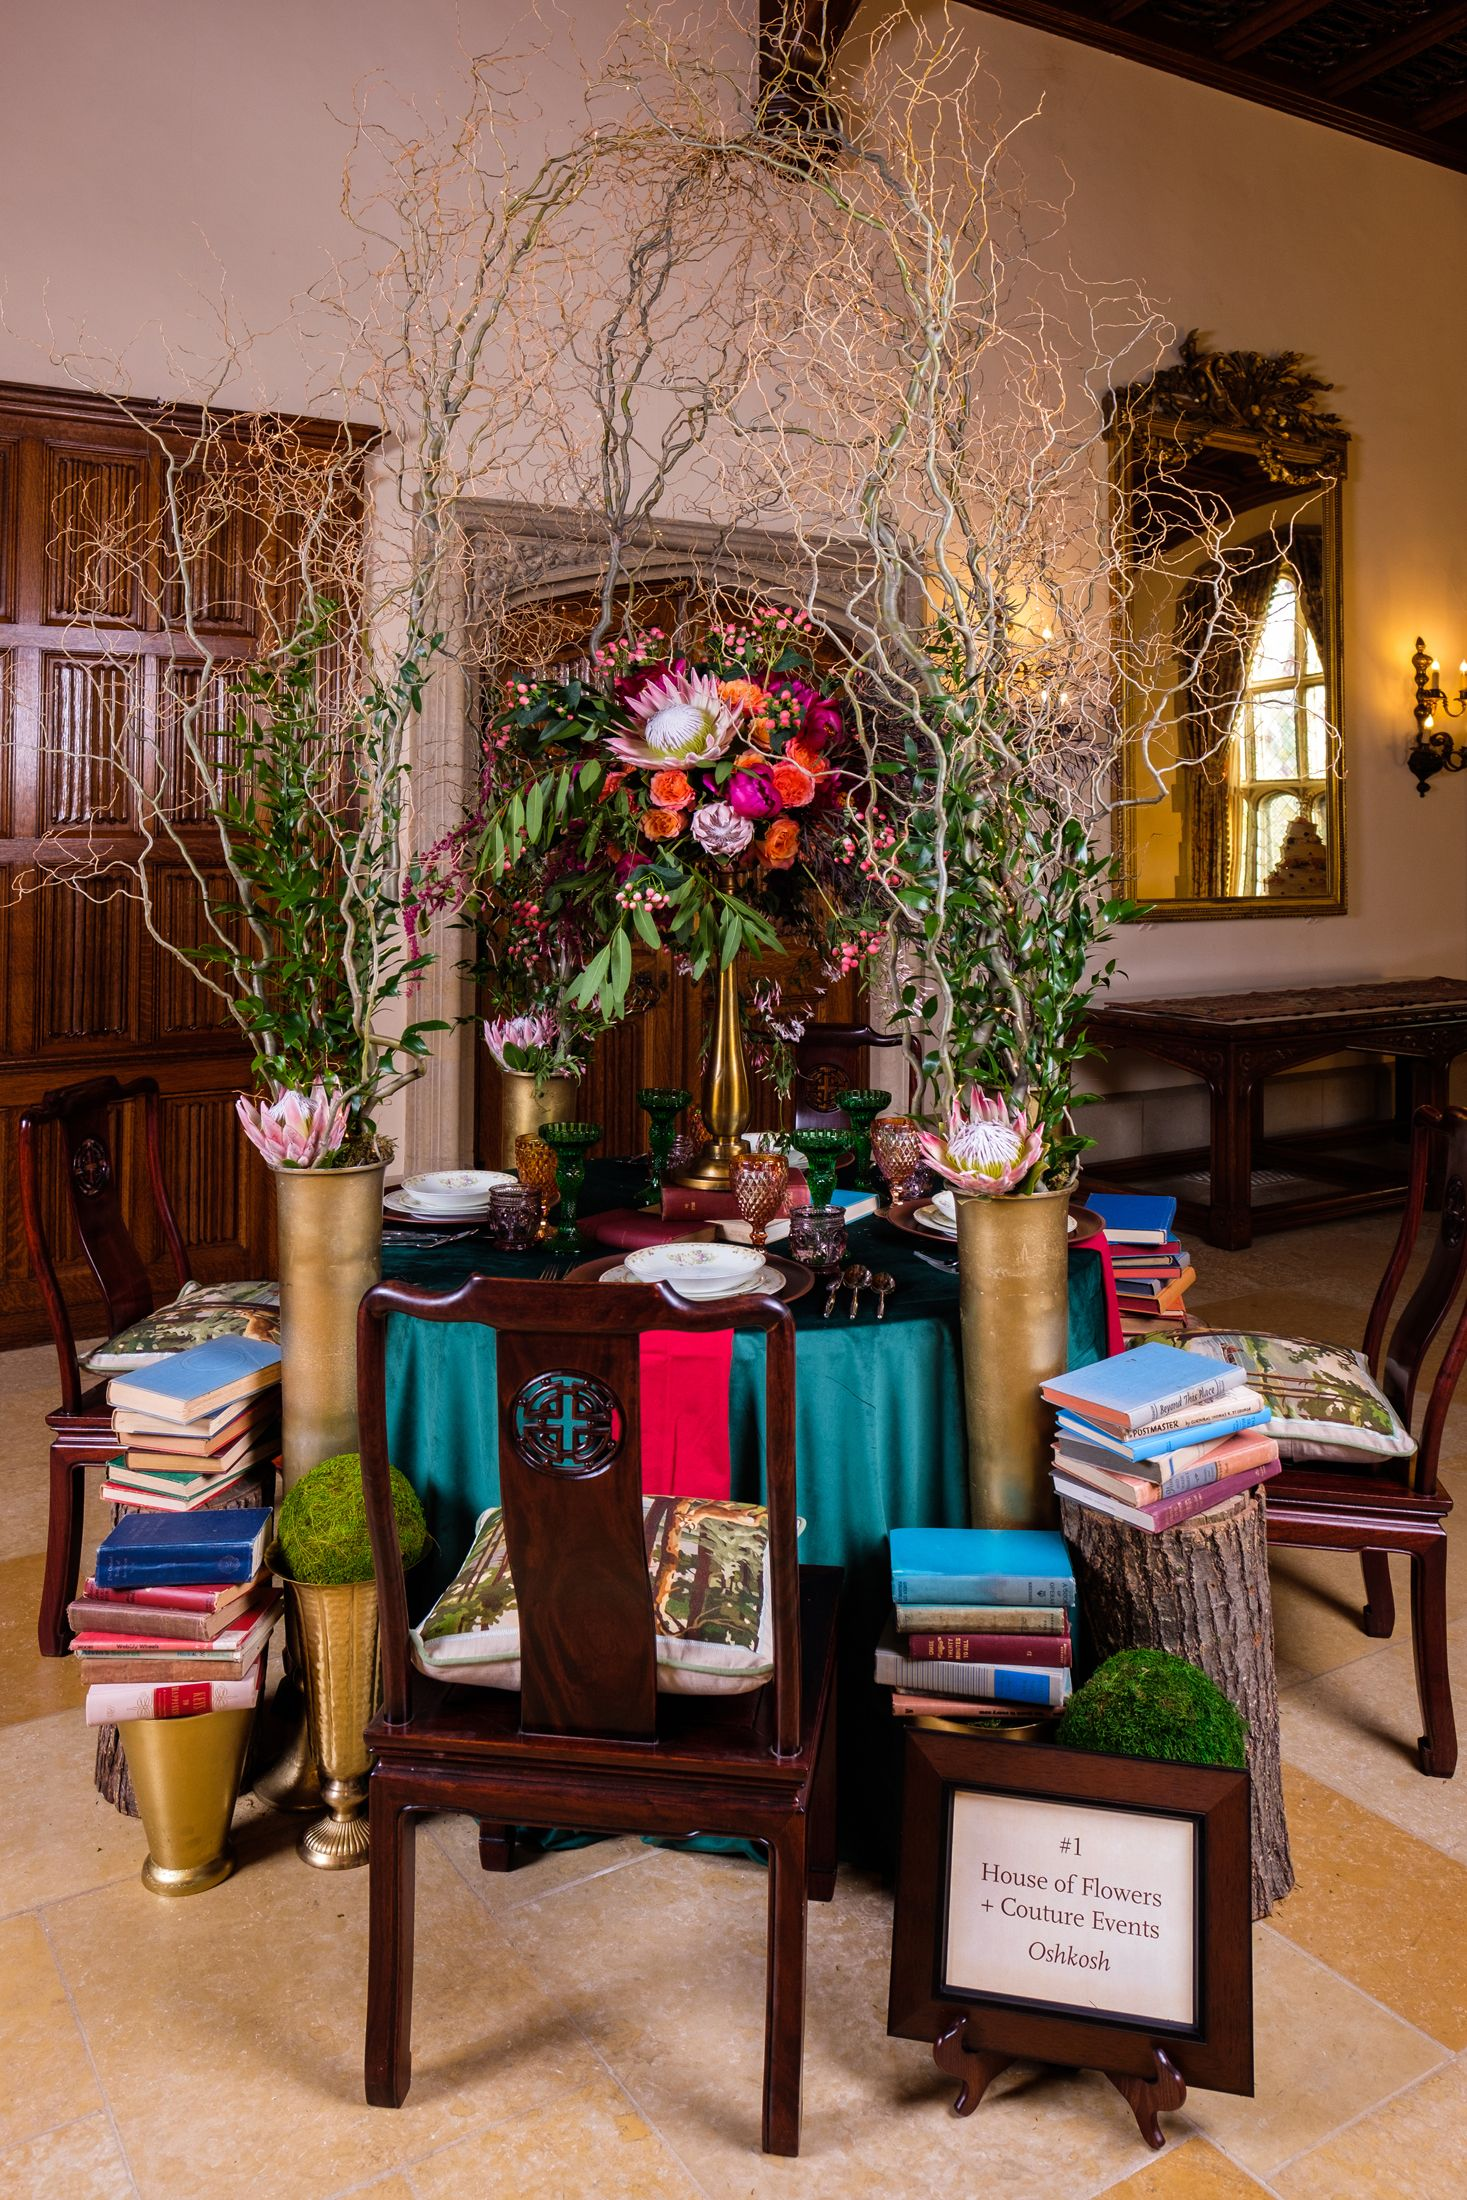 Tablescape By House Of Flowers Couture Events At The 2018 Rooms Of Blooms Floral Show At The Paine Photo By Phil Weston Table Decorations Decor Interior